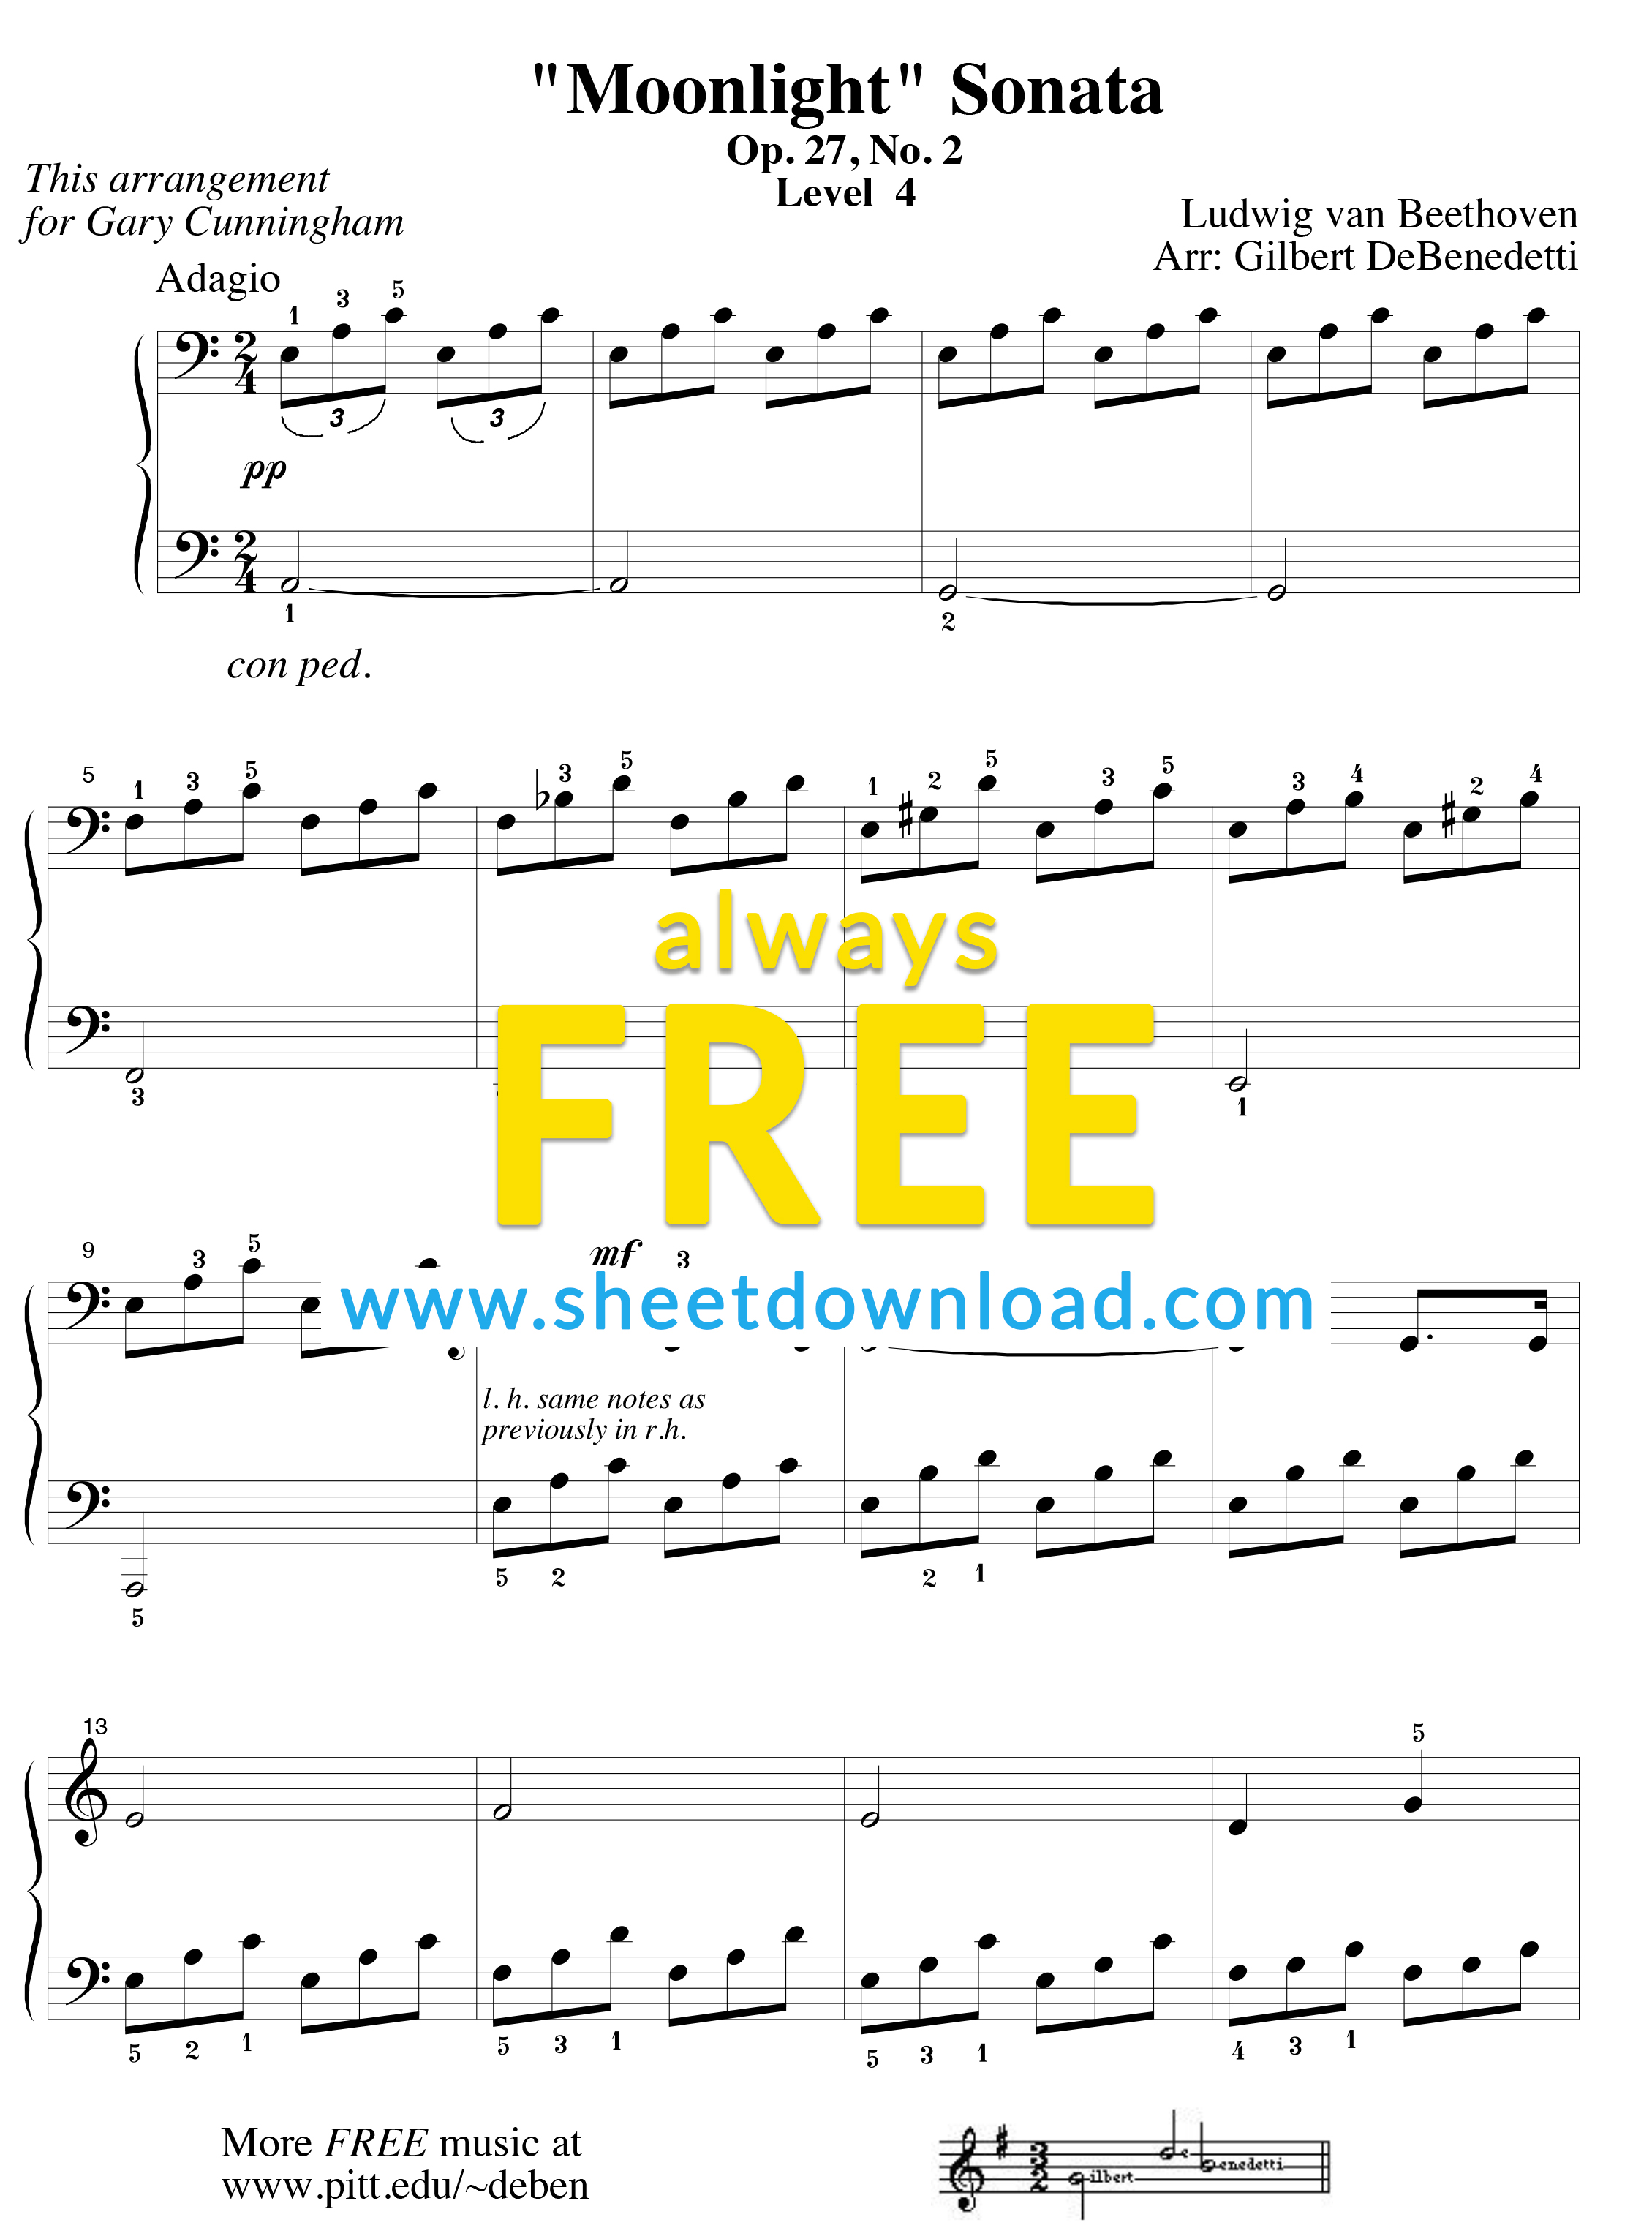 photo regarding Beauty and the Beast Piano Sheet Music Free Printable titled Best 100 Prominent Piano Sheets Downloaded versus